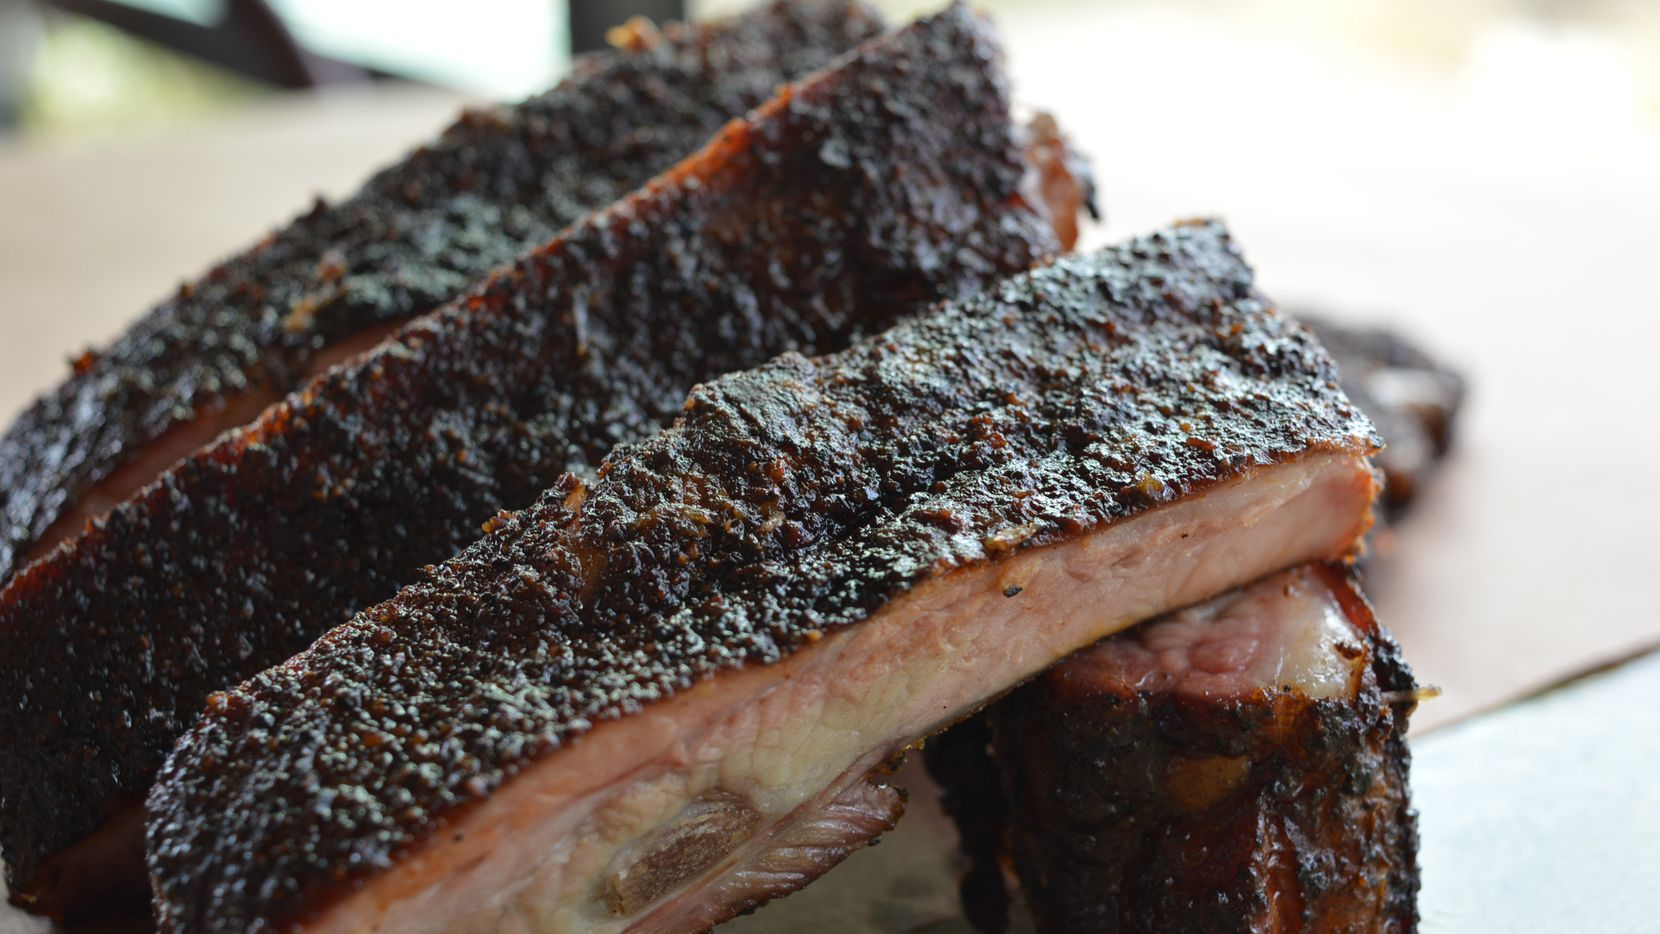 Bumbershoot Barbecue in Argyle comes from the restaurant group that owns nearby spot Earl's 377 Pizza as well as Barley & Board in Denton. Here: Executive chef Chad Kelley's ribs.